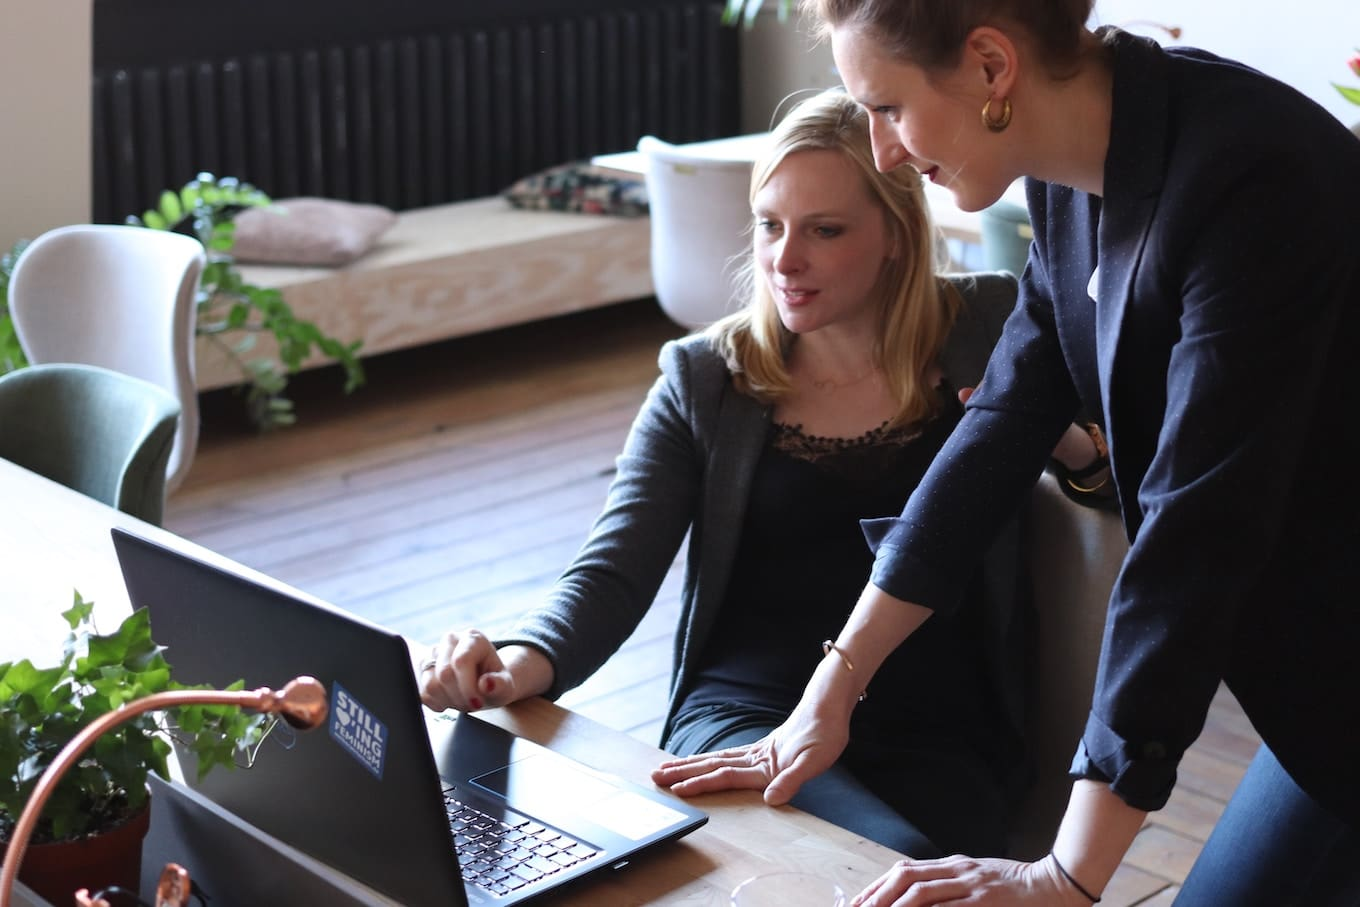 Two women looking at laptop